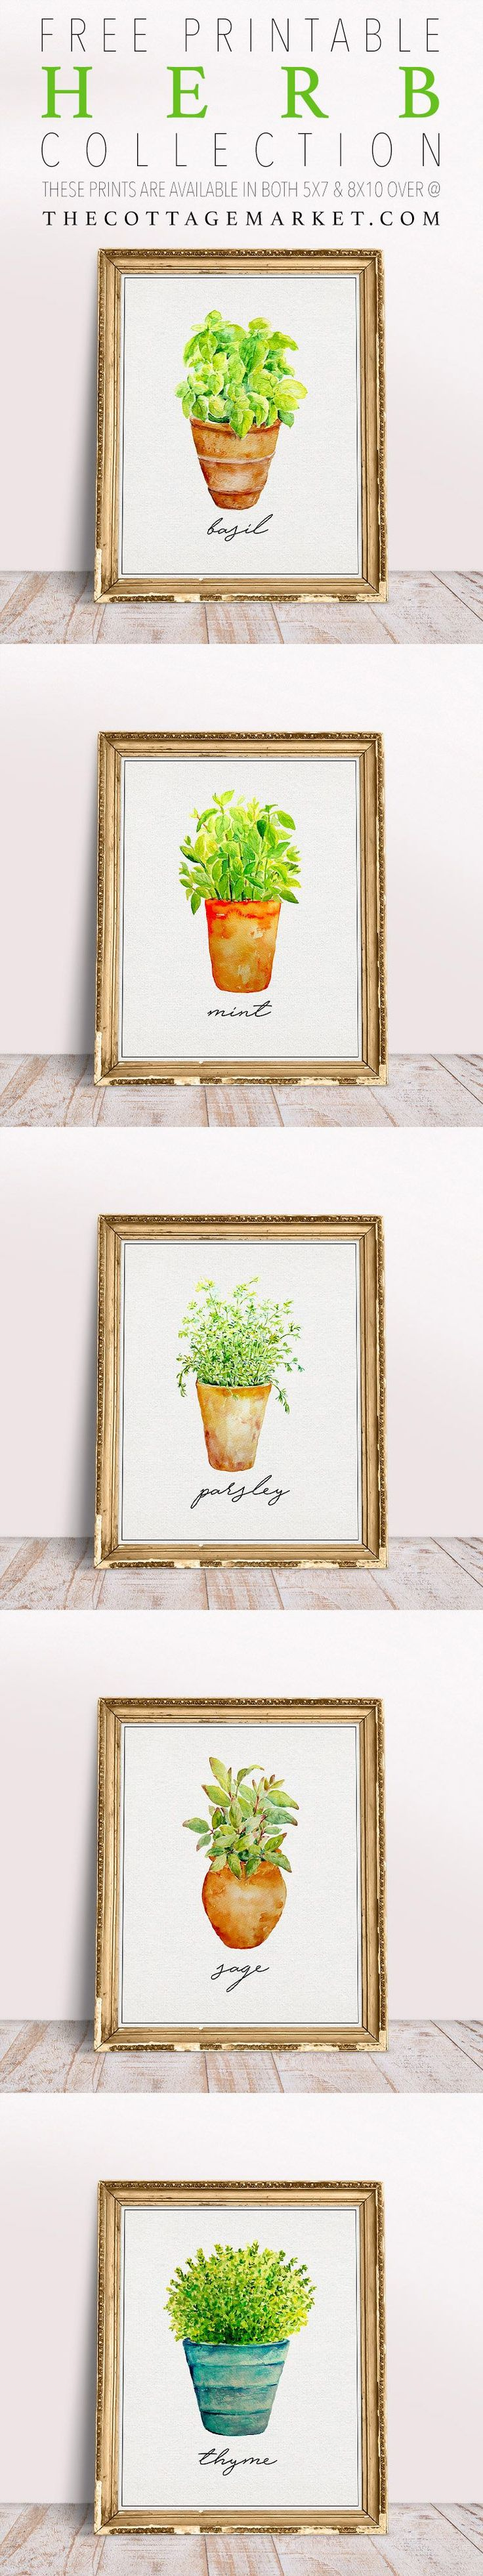 Free Printable Herb Collection...This 5 piece set is going to look amazing on your wall!